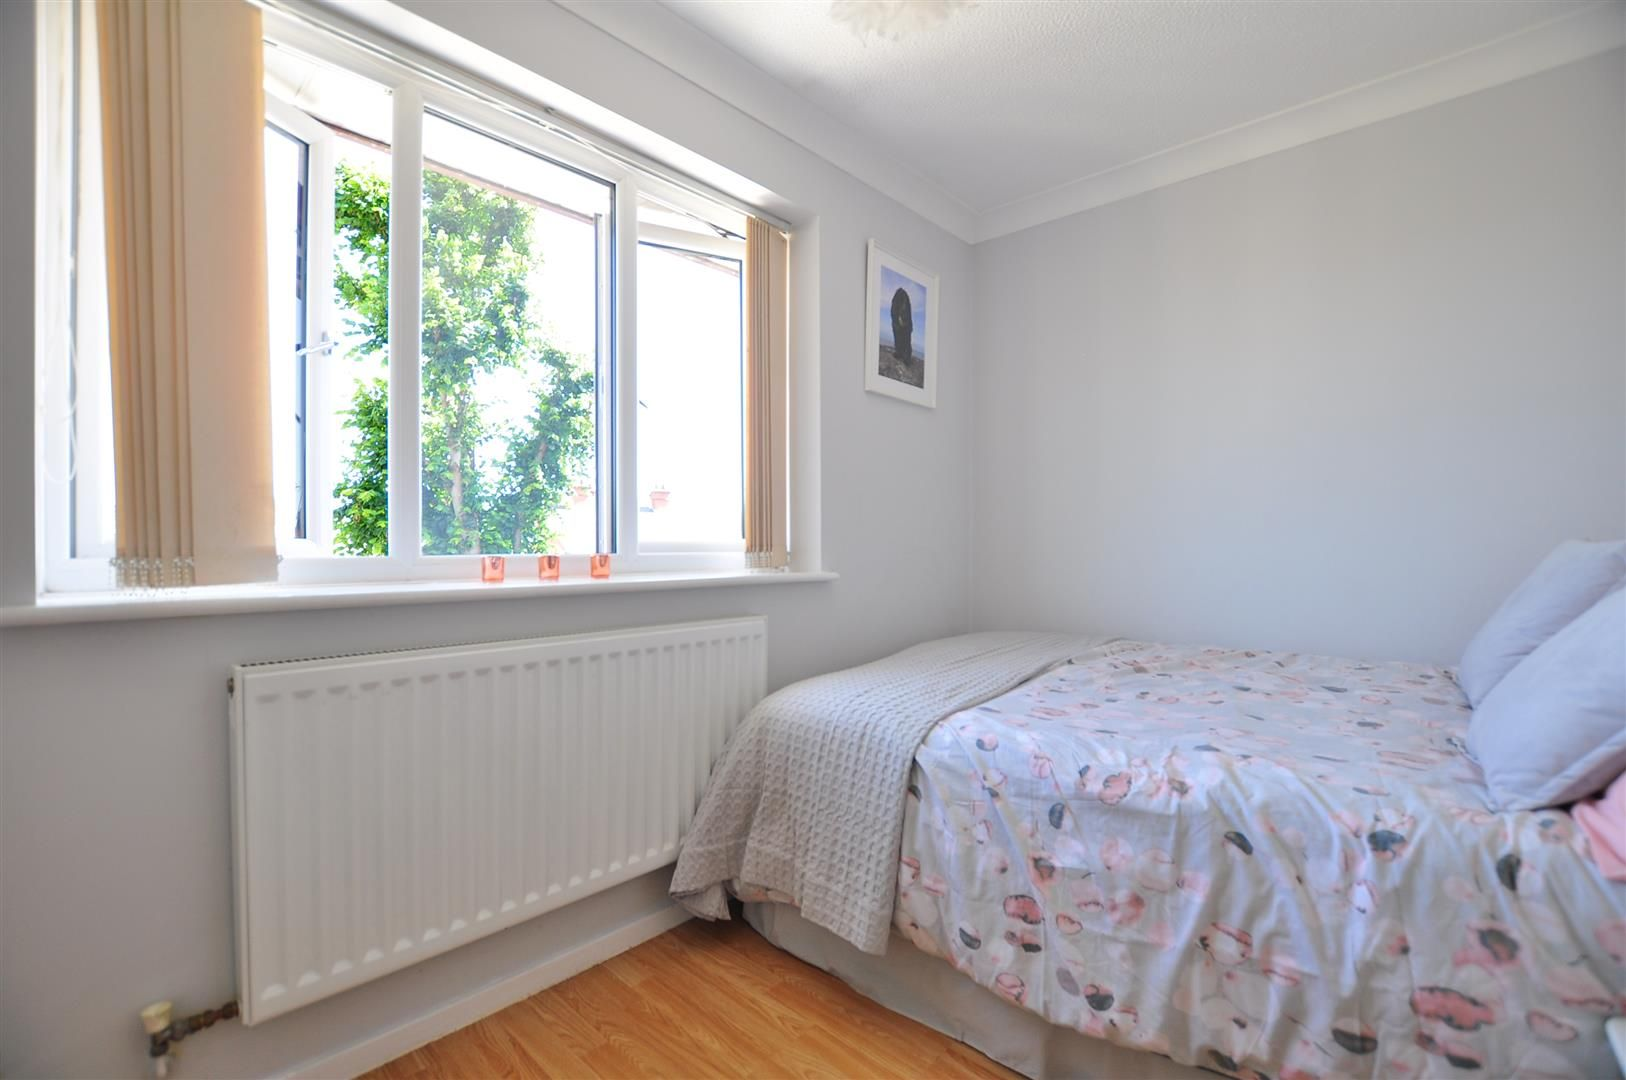 2 bed end-of-terrace for sale  - Property Image 15